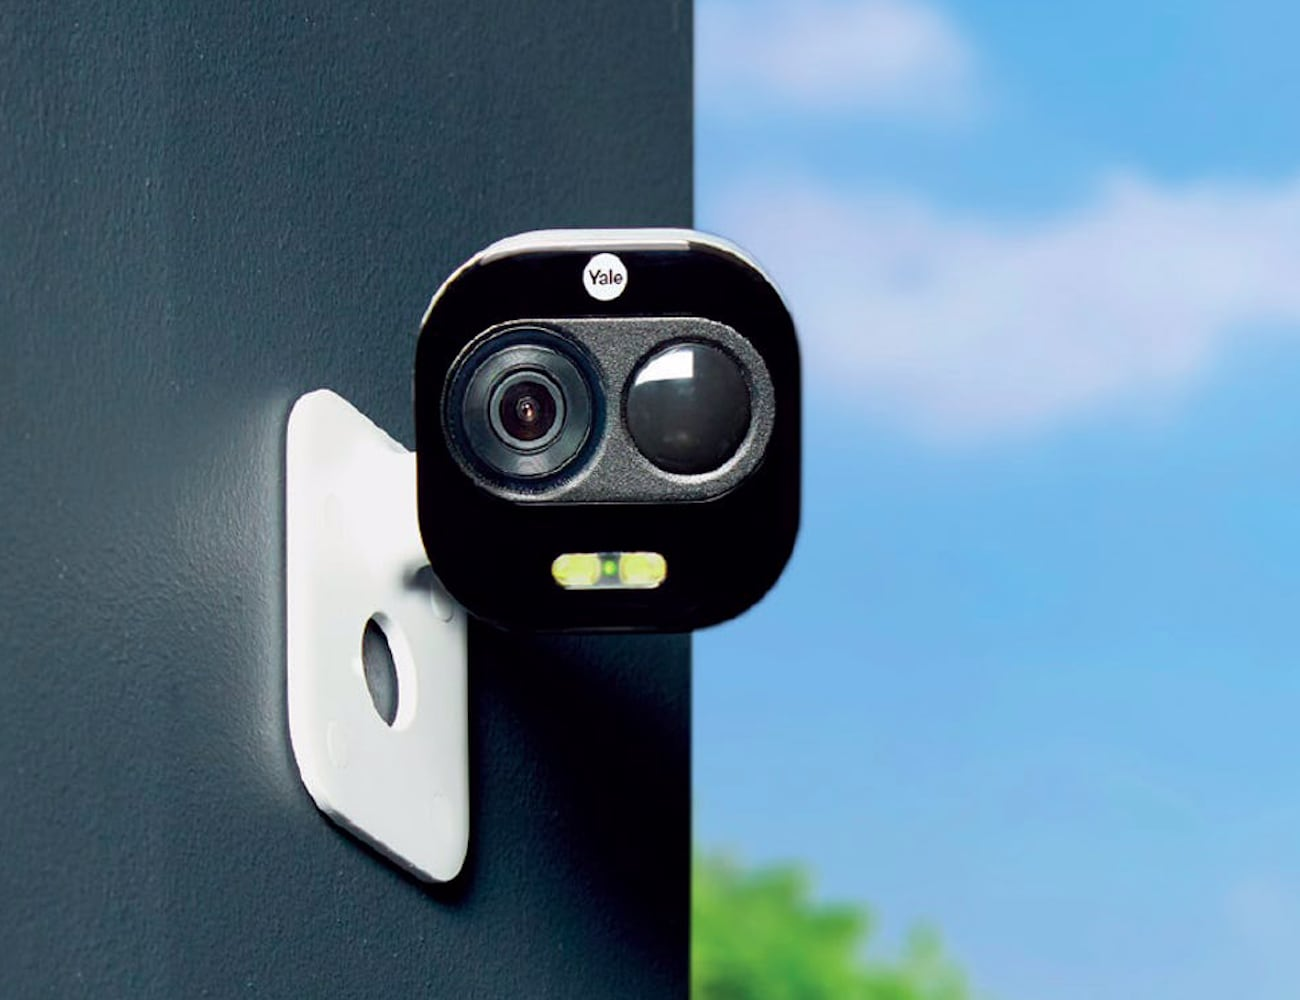 Yale All-In-One Smart Home Camera offers round-the-clock protection